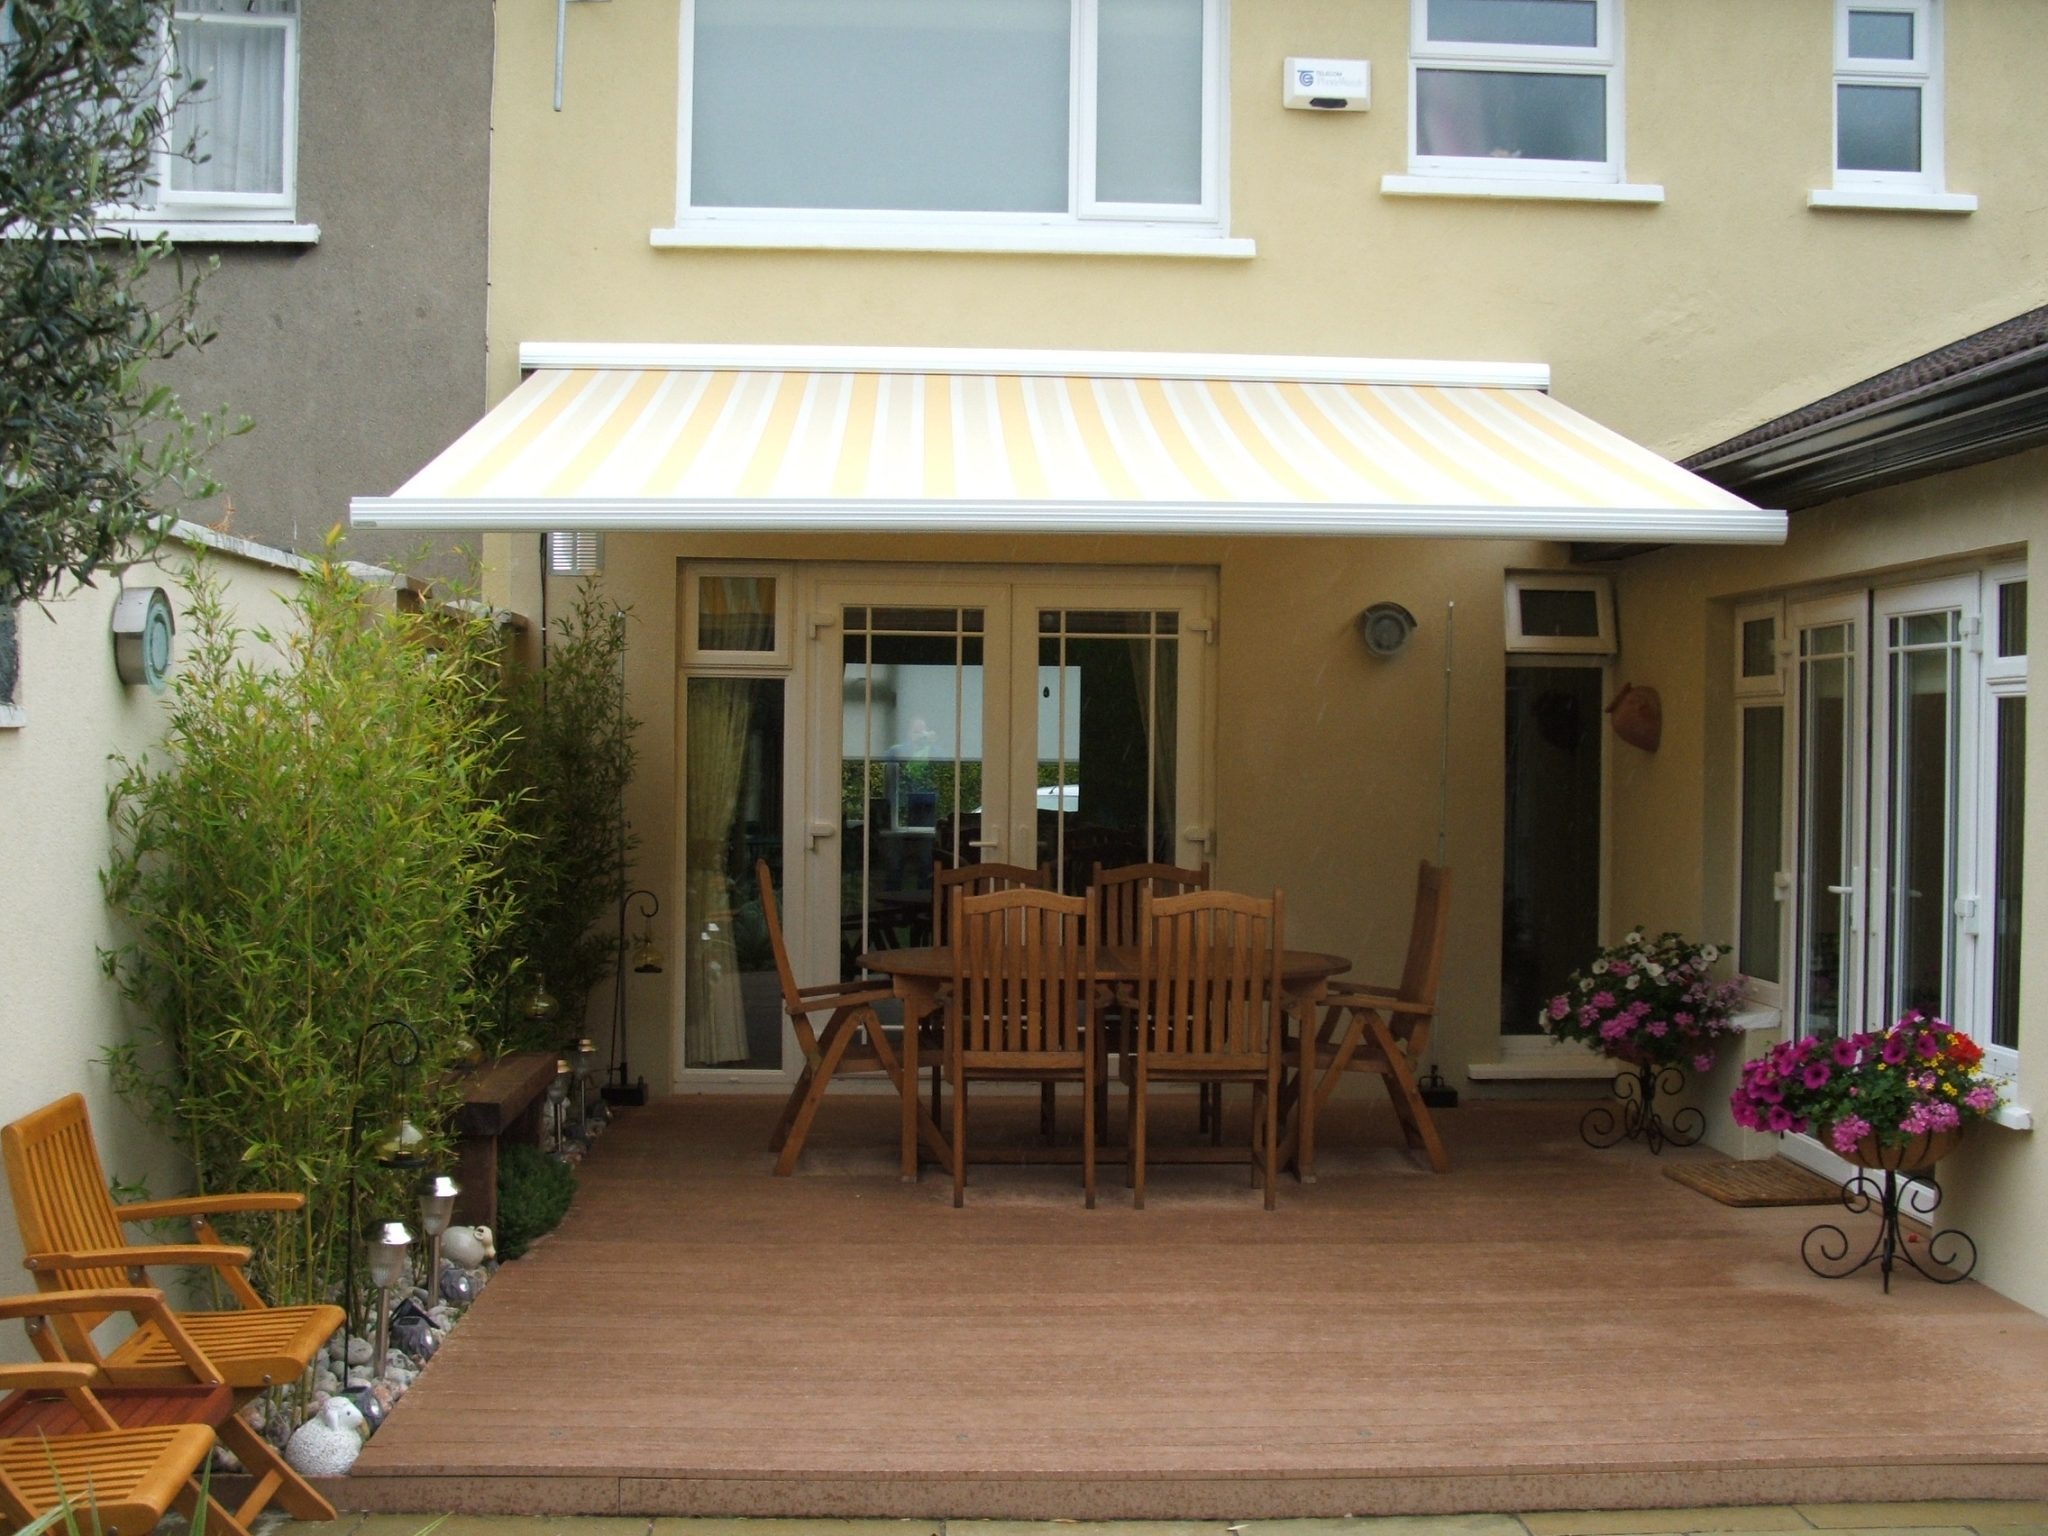 Domestic Awnings Aspiration Blinds In Bolton